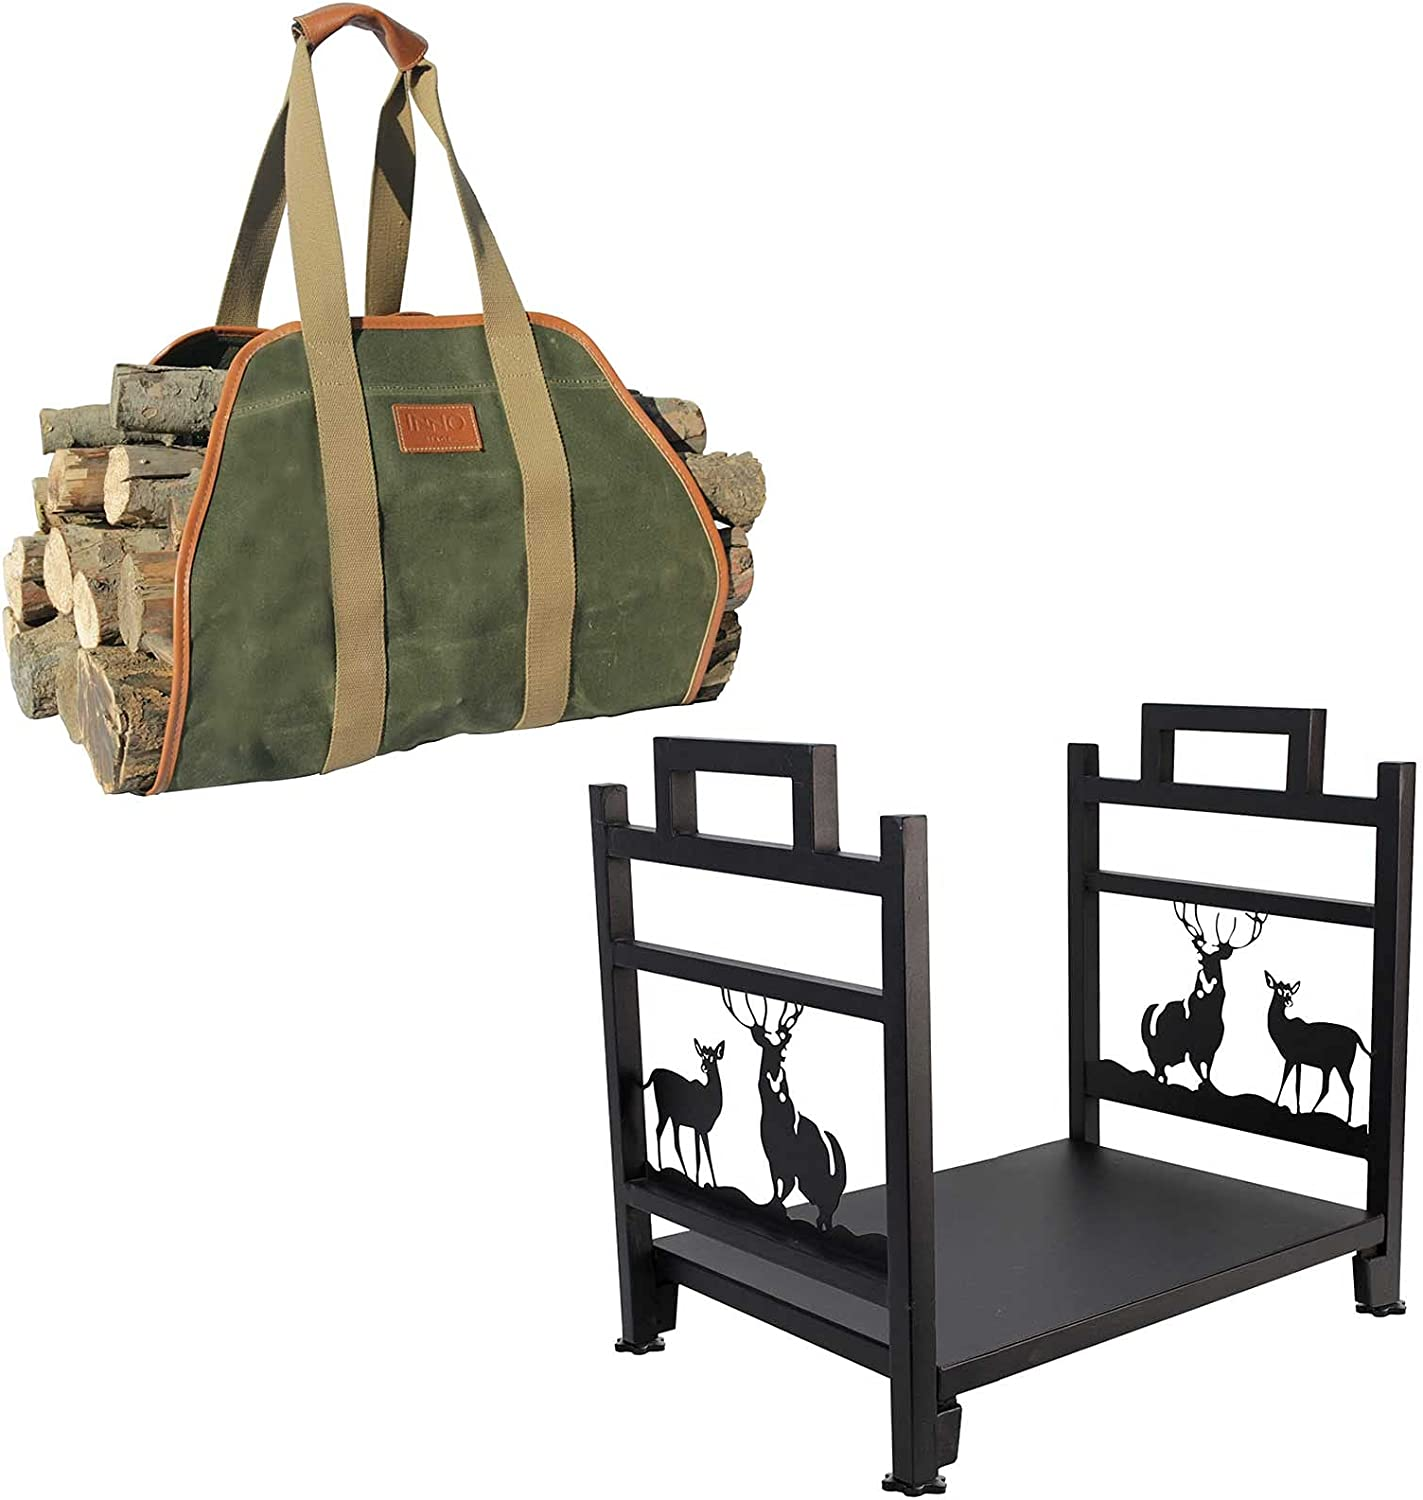 Detroit Mall Waxed Canvas Log Carrier Tote Firewood Rack Manufacturer direct delivery and Bag